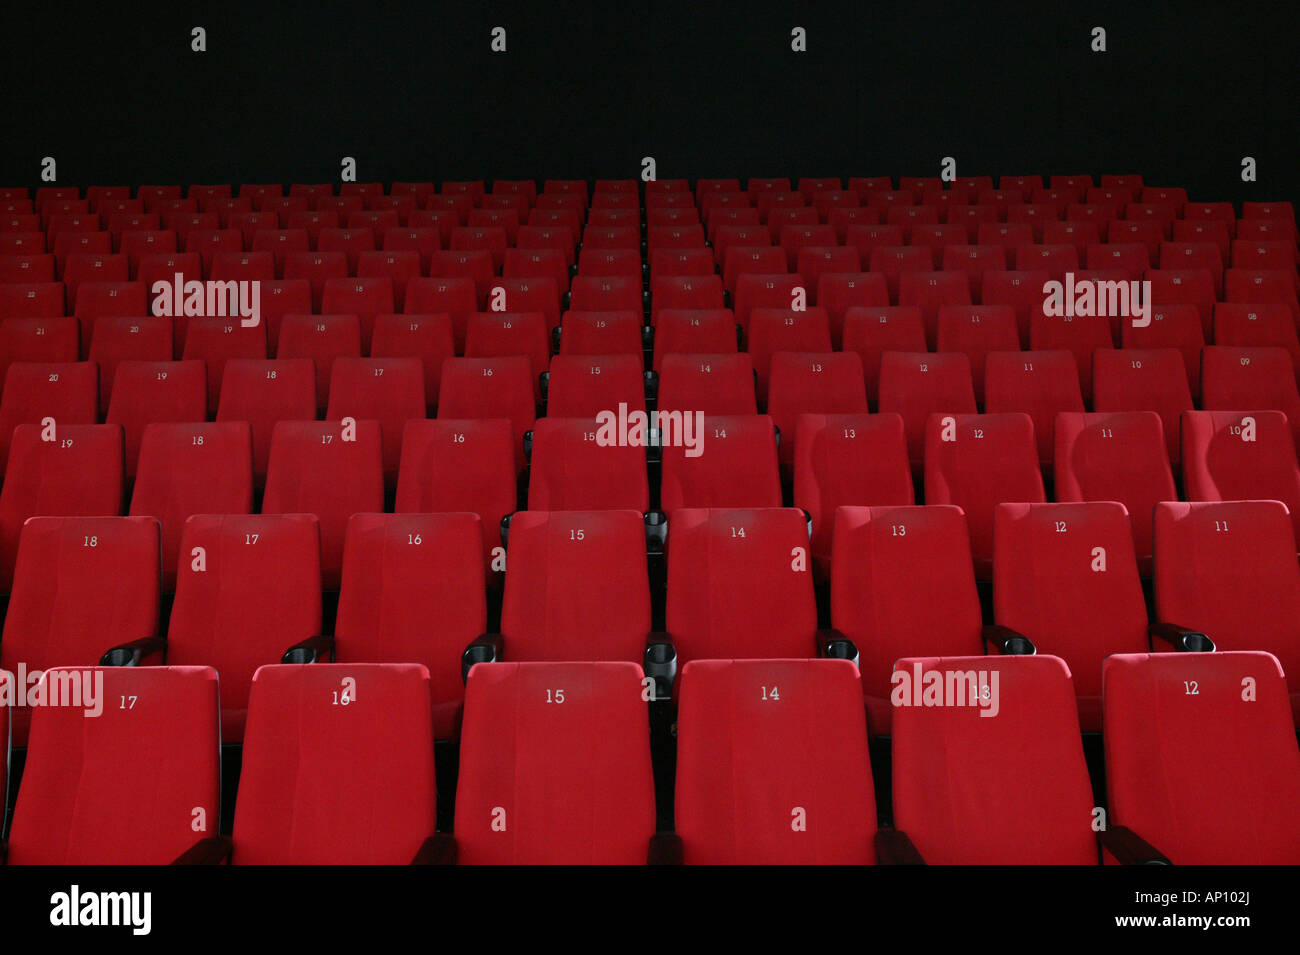 Rows of empty red cinema seats, Garmisch-Partenkirchen, Bavaria, Germany - Stock Image